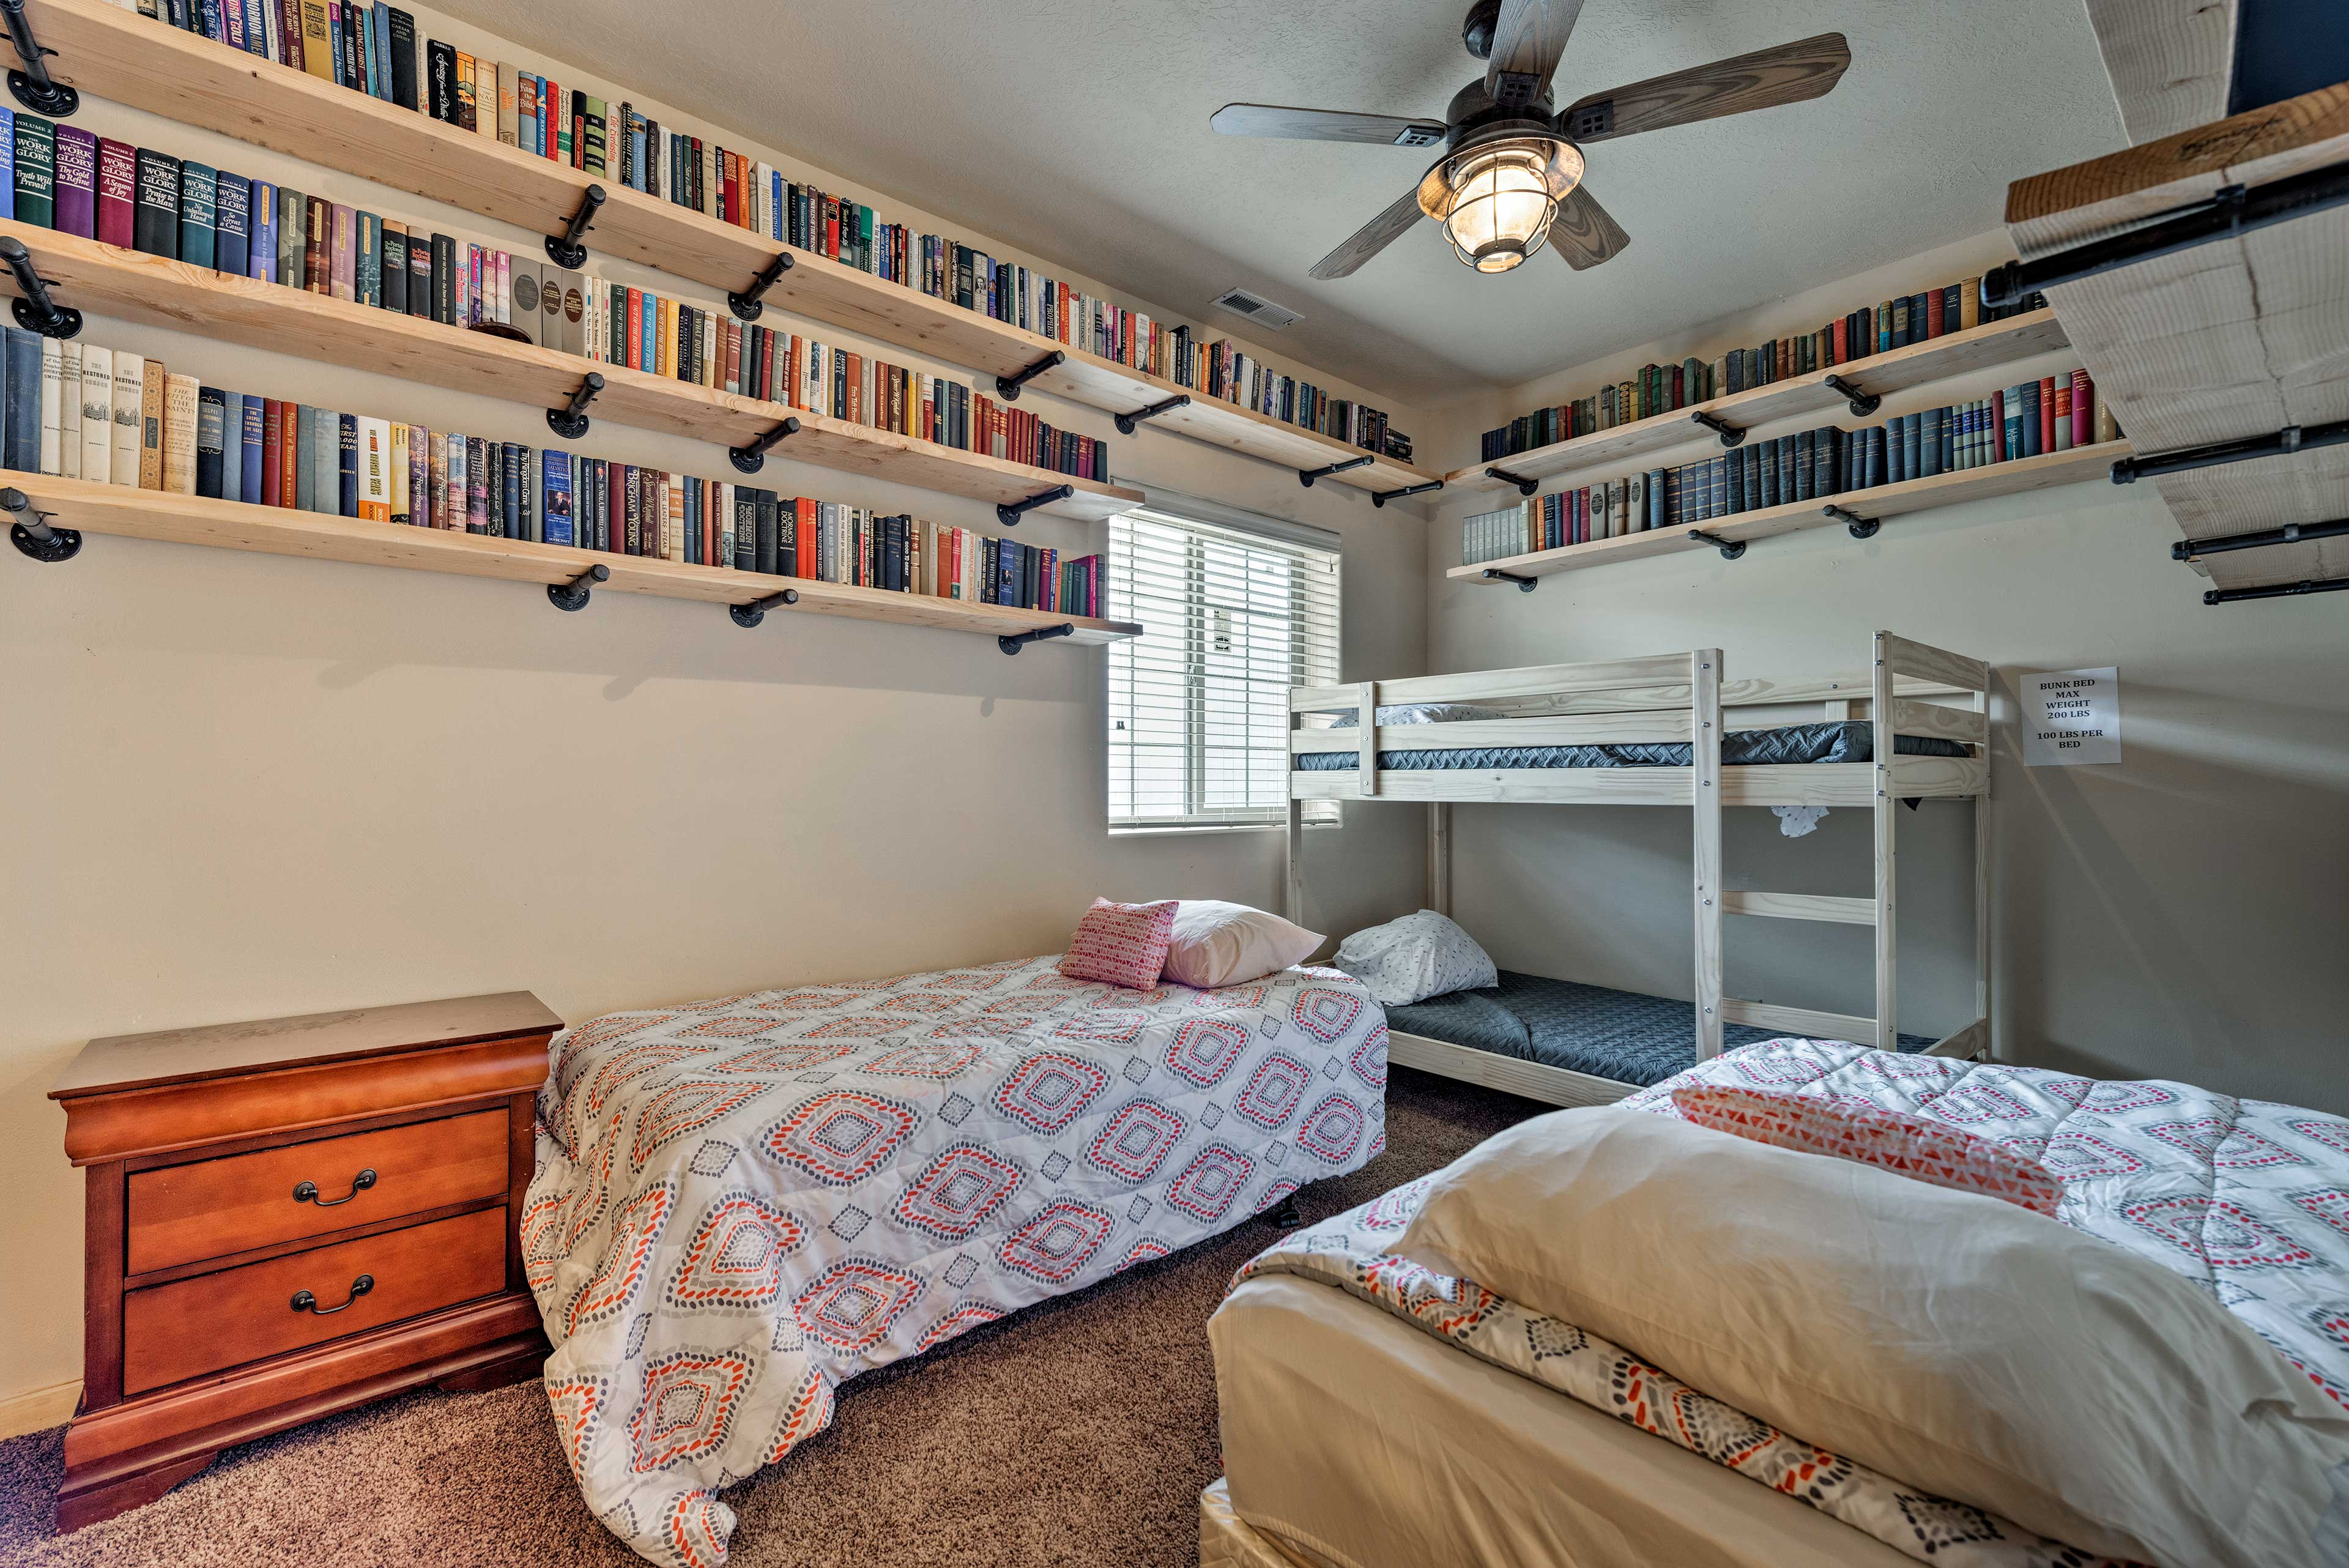 This room now features 2 twin beds and a twin bunk bed!